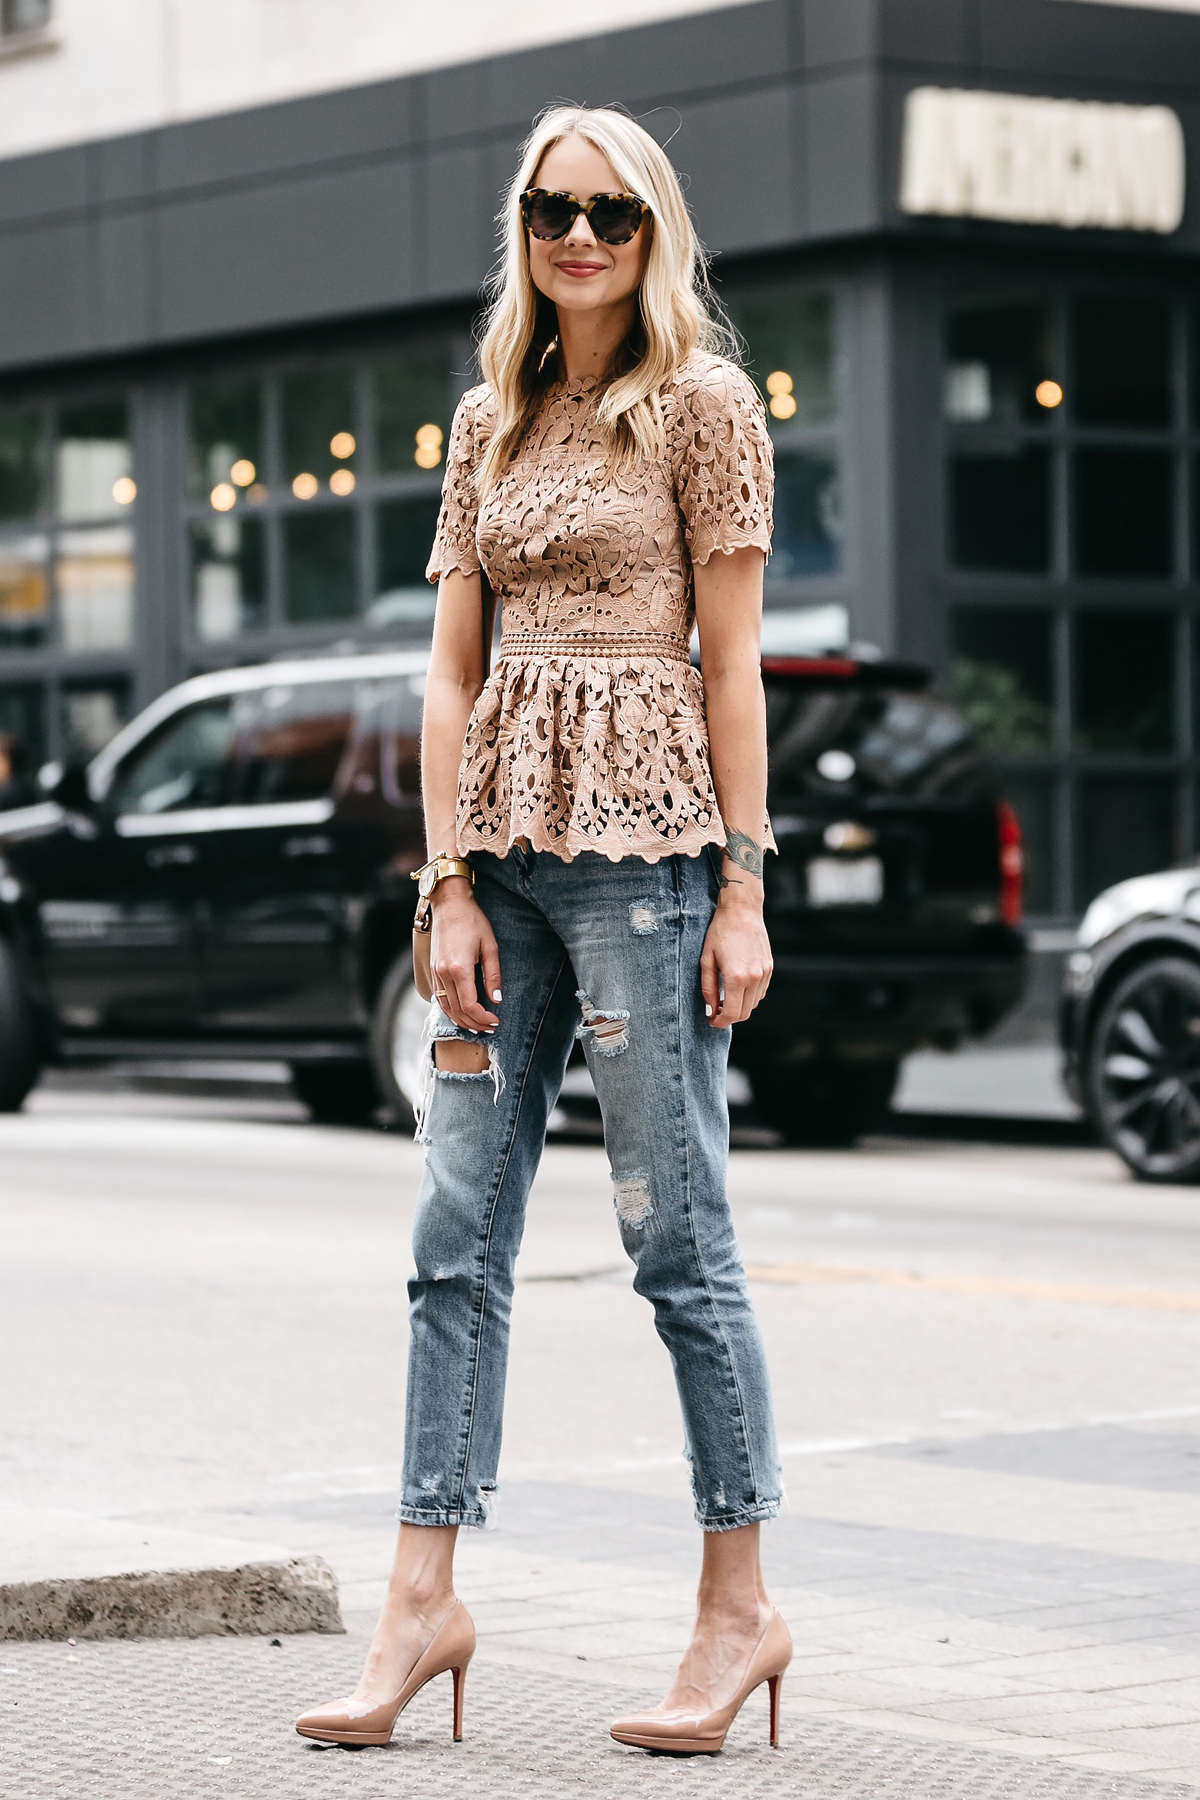 Fashion Jackson, Dallas Blogger, Fashion Blogger, Street Style, Ministry of Style Lush Lace Top, Blush Lace Peplum Top, Pink Lace Peplum Top, Beige Lace Peplum Top, Gucci Soho Disco Handbag, Denim Ripped Relaxed Jeans, Christian Louboutin Pigalle Nude Pumps